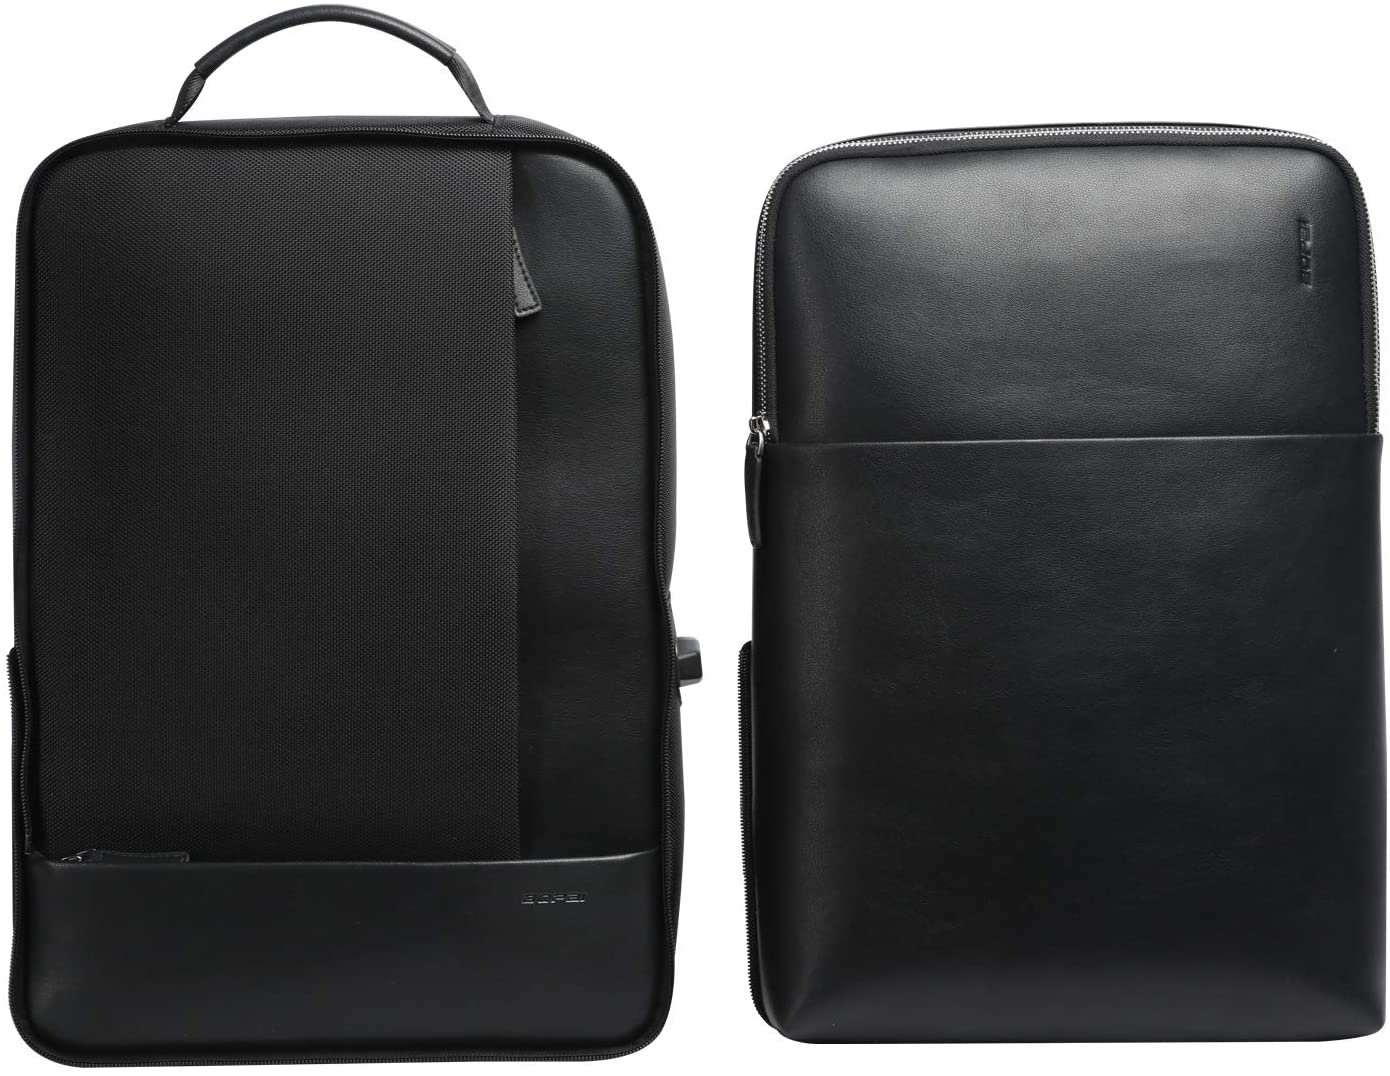 BOPAI Max 57% OFF 2 in 1 Laptop Travel for Backpack Max 80% OFF Professional 15